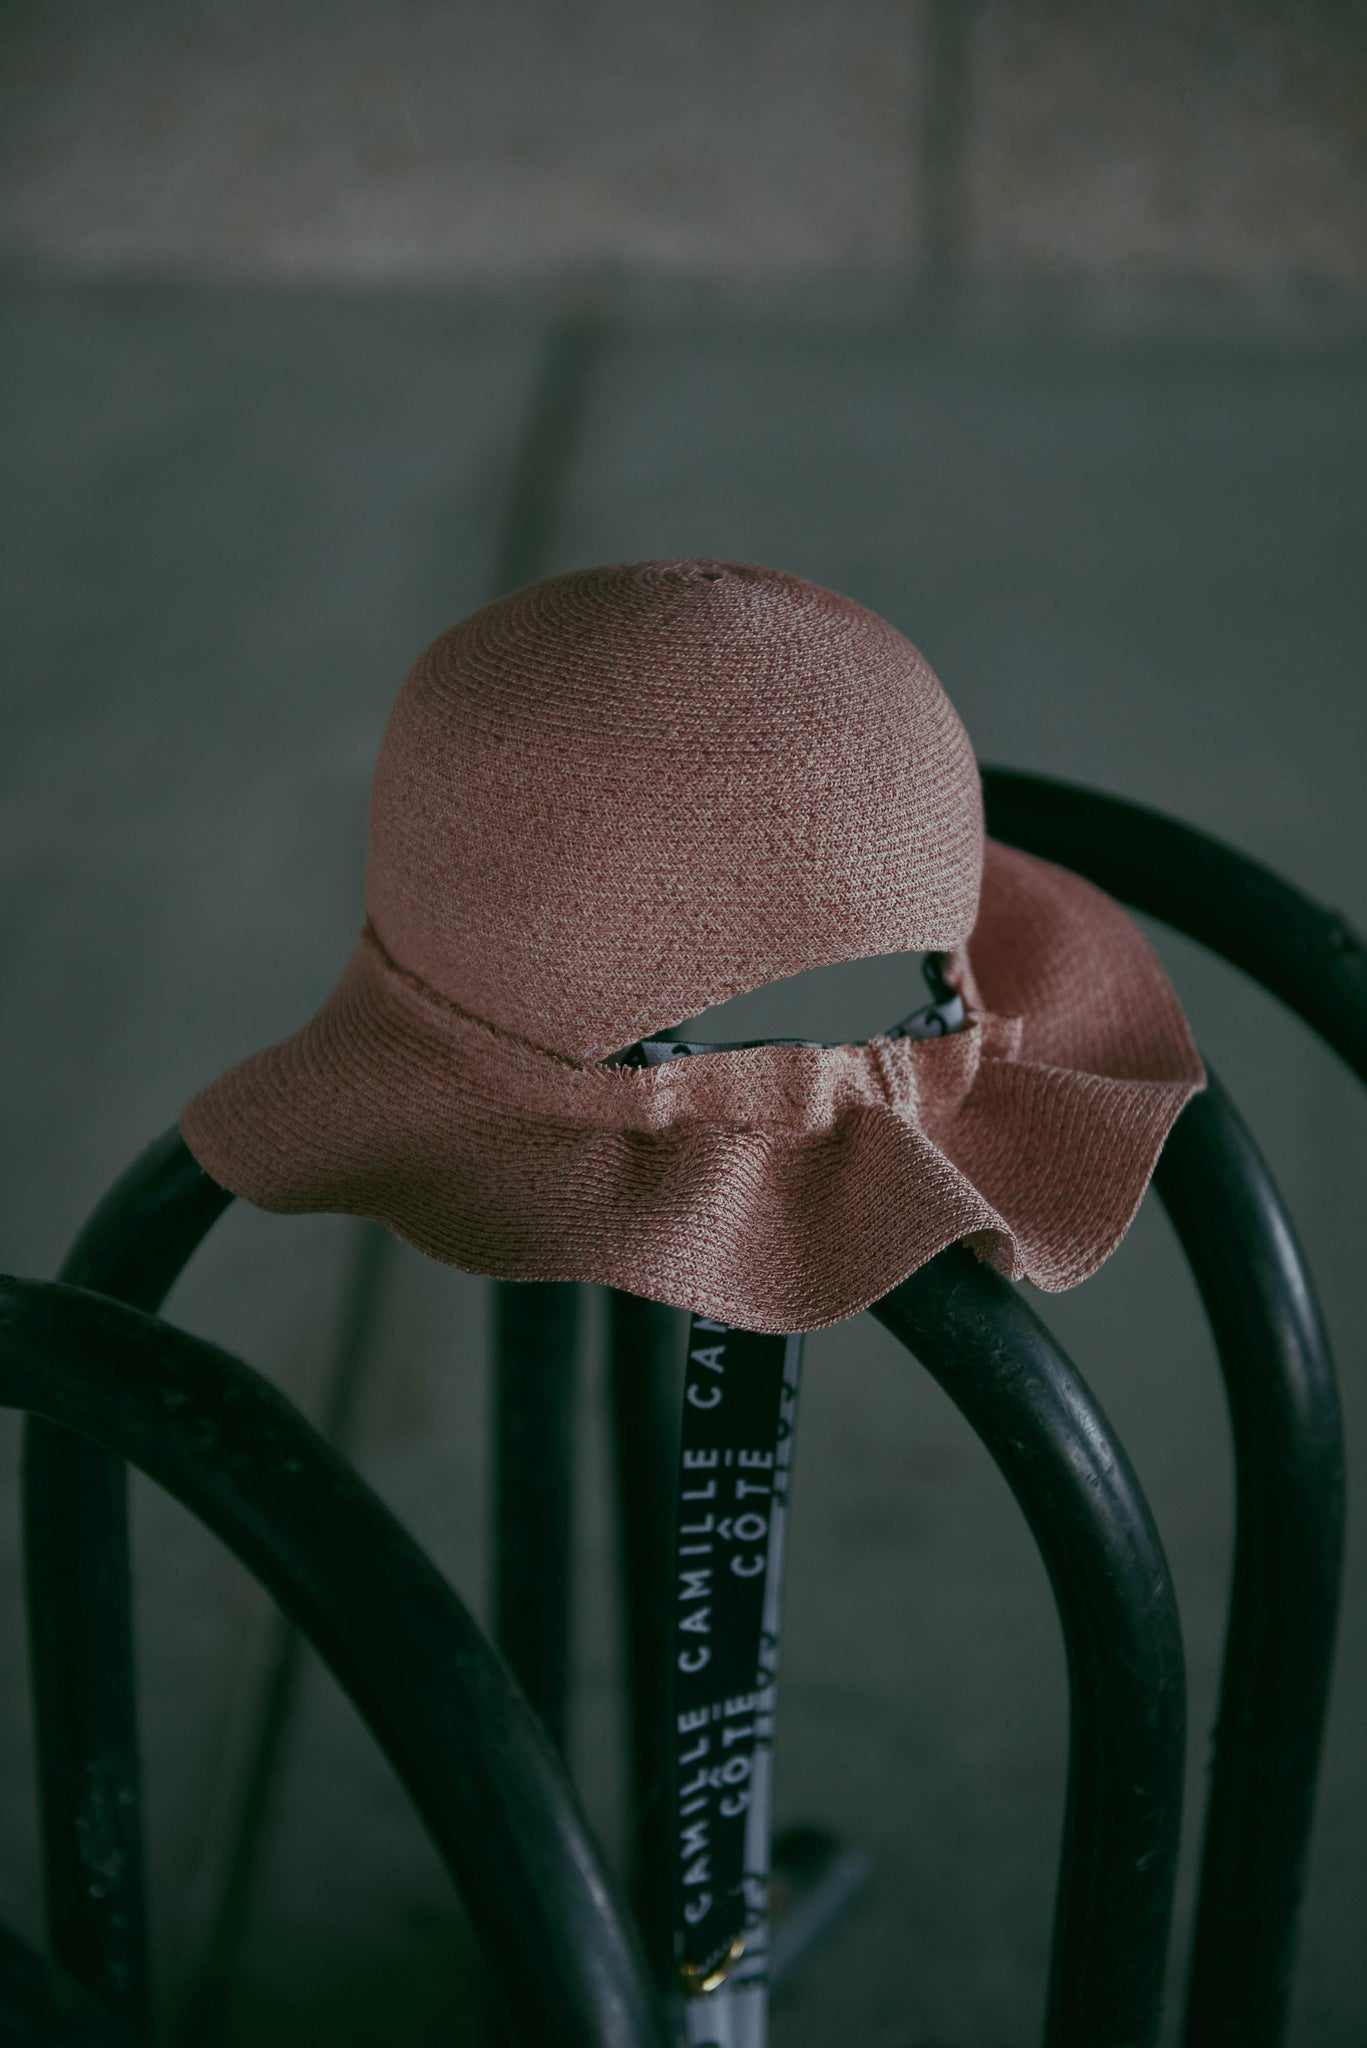 On the street, the pink bucket hat liberty matching the Camille Côté belt.